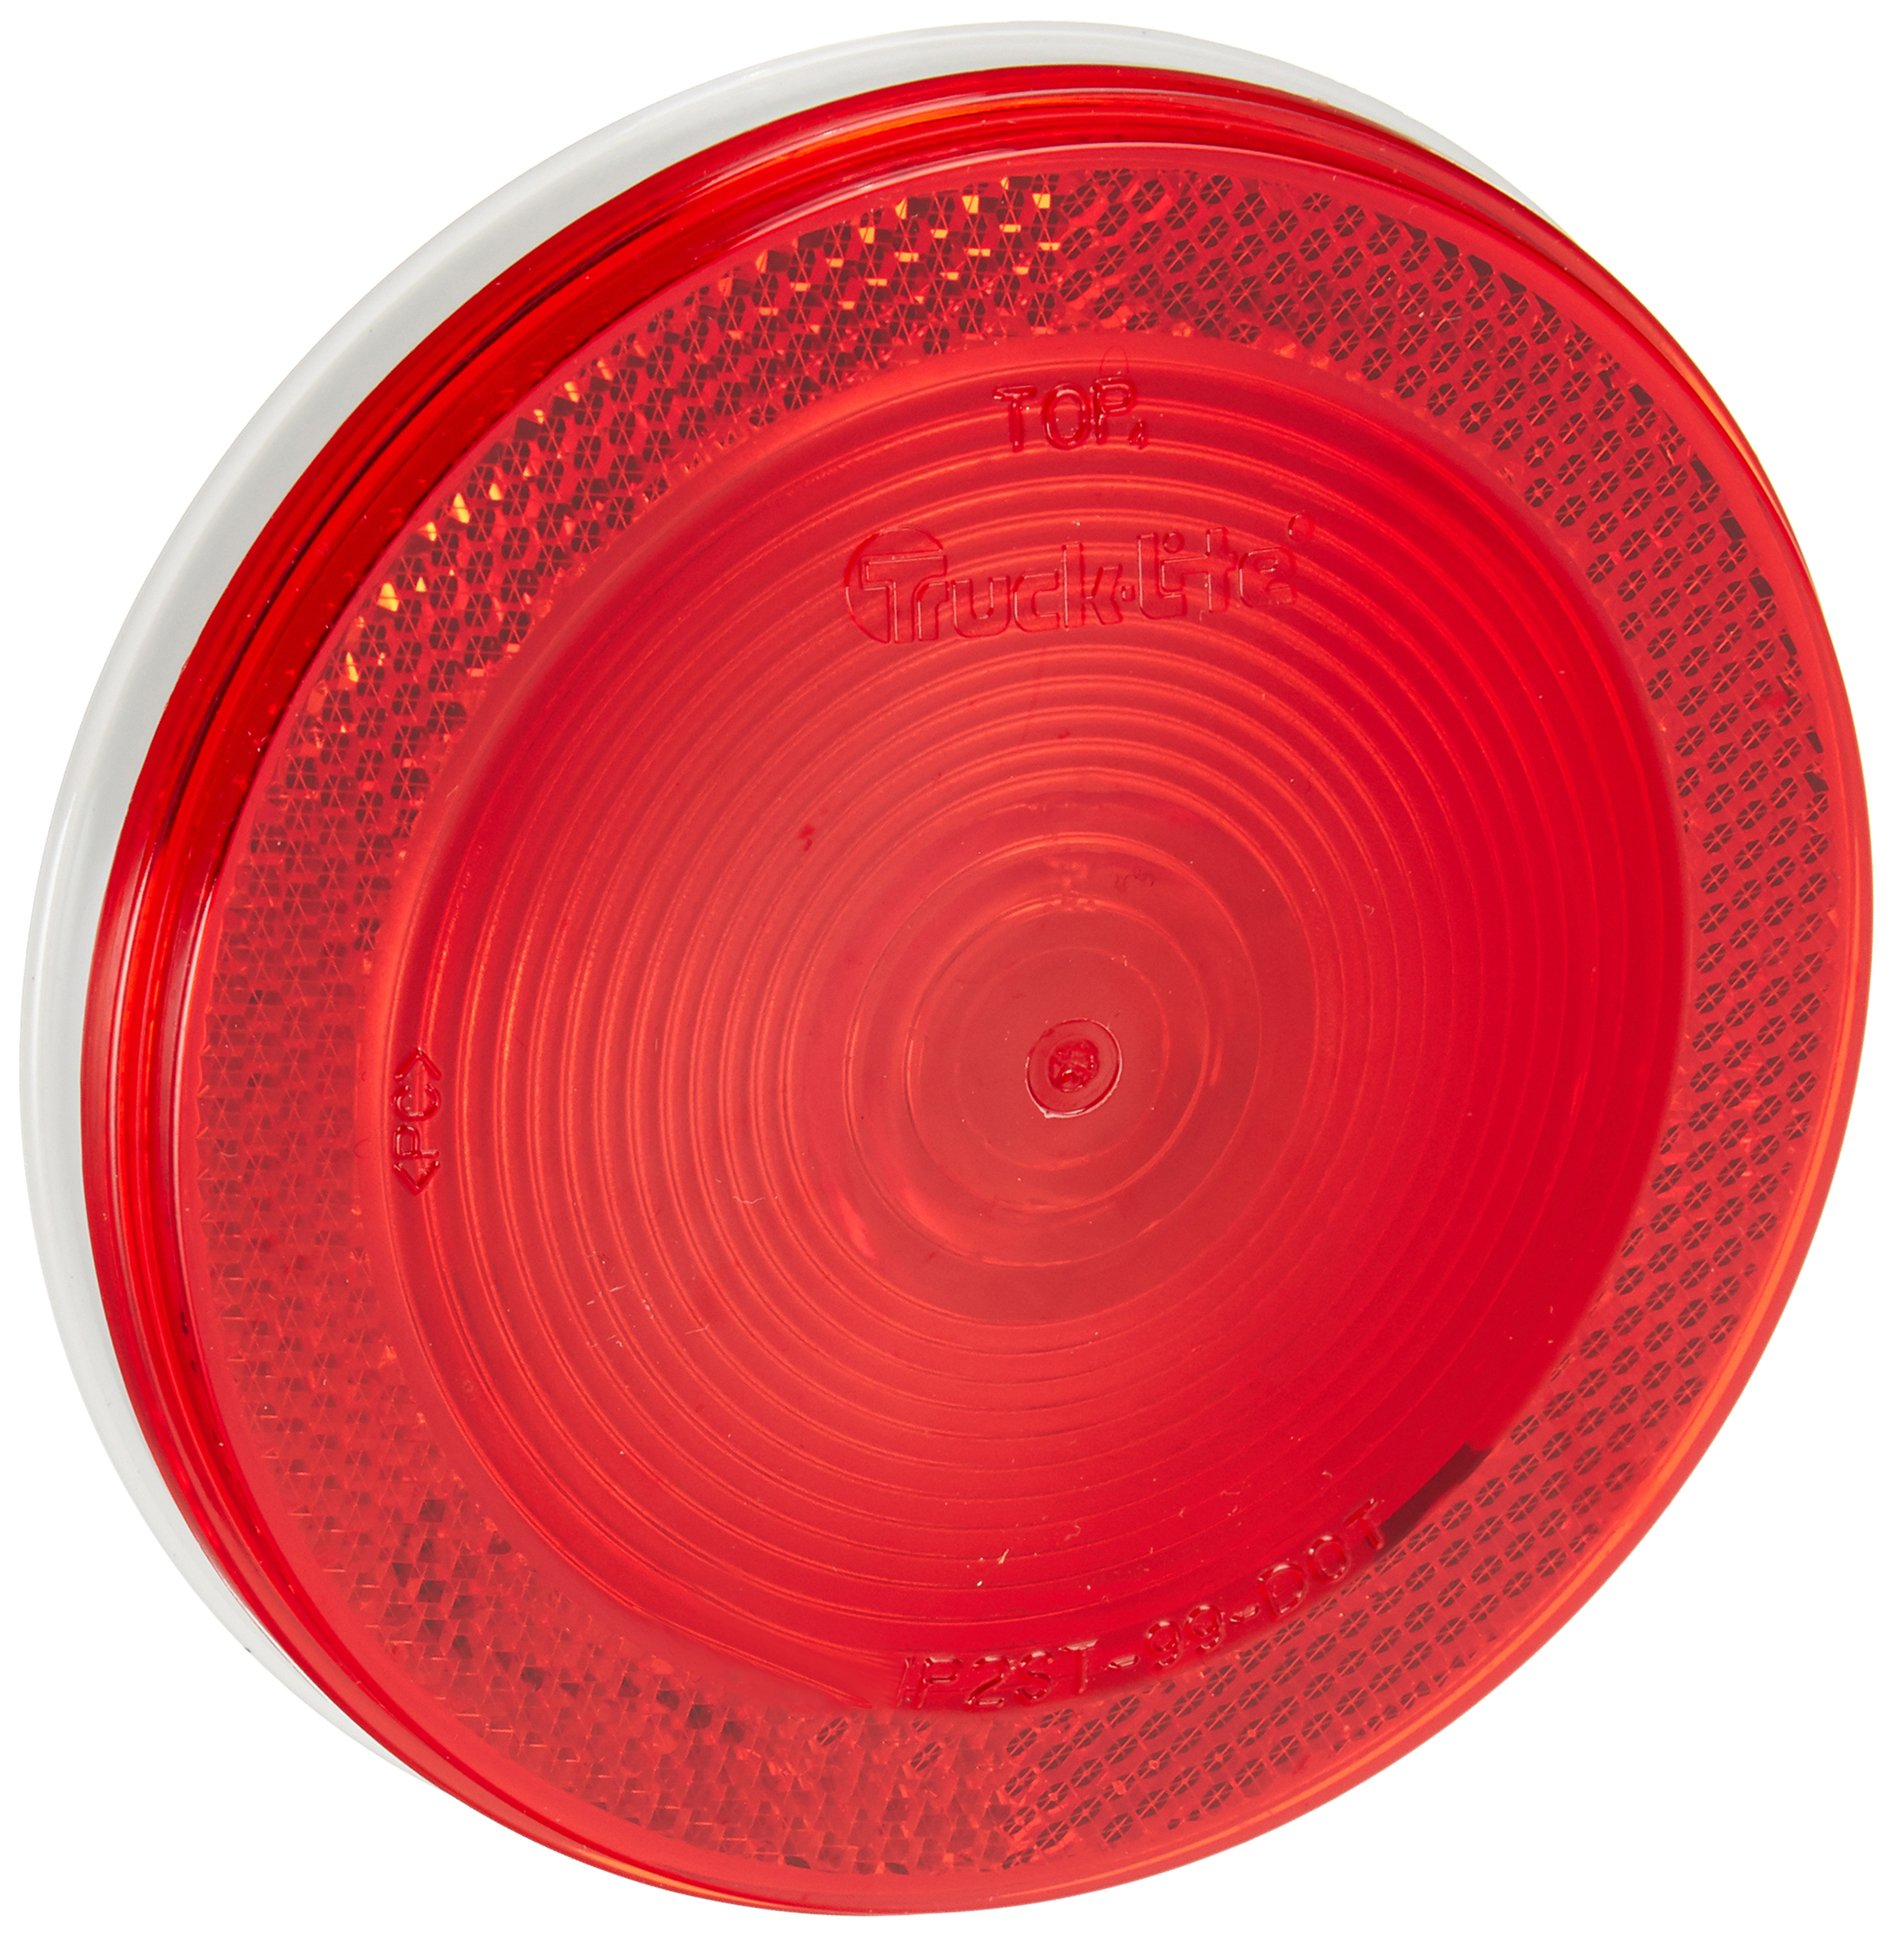 Truck-Lite (40215R) Stop/Turn/Tail Lamp by Truck-Lite